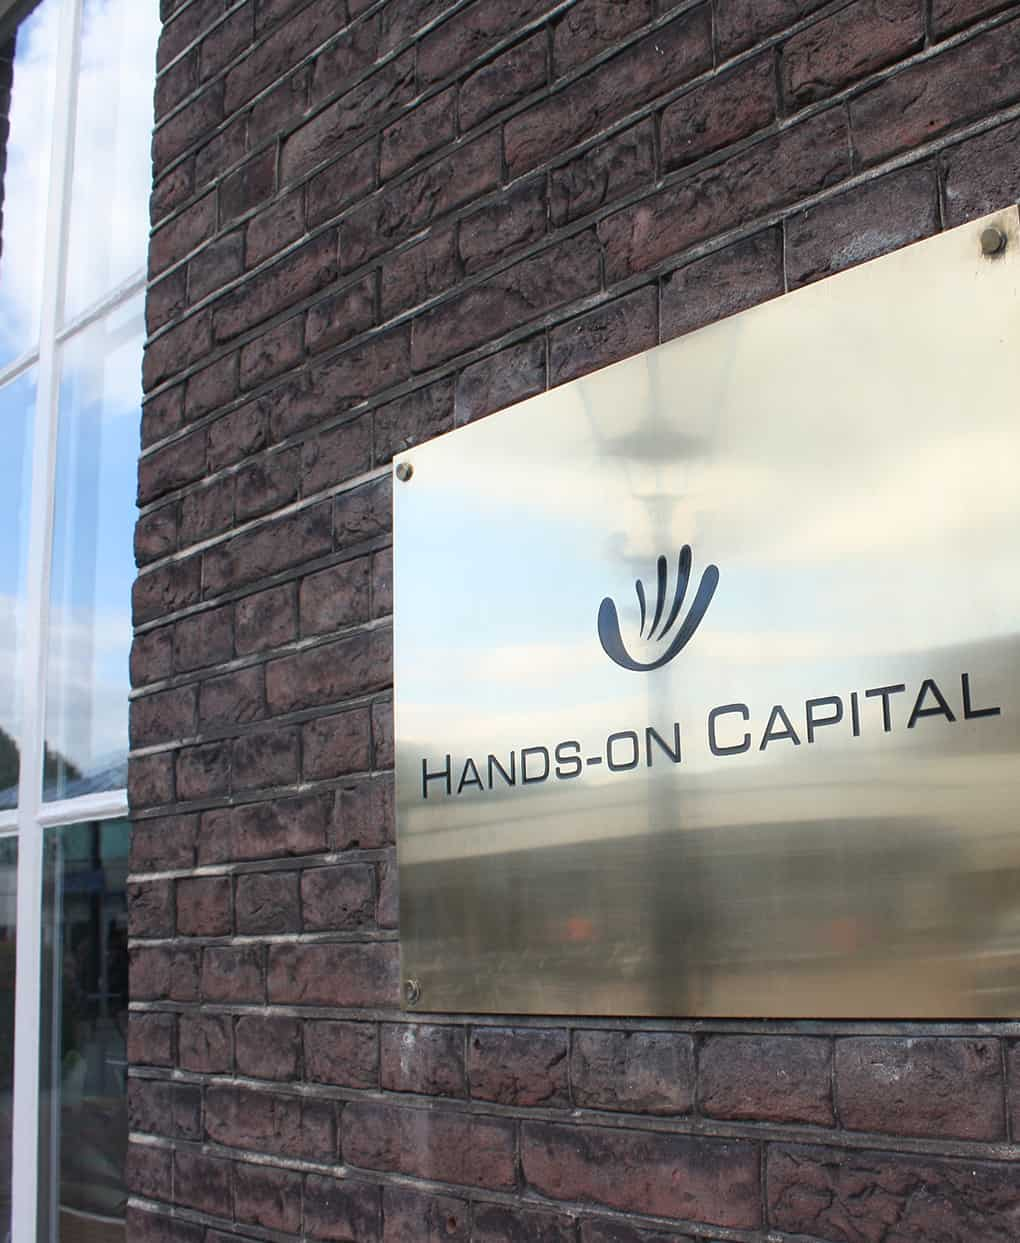 hands on capital in het nieuw